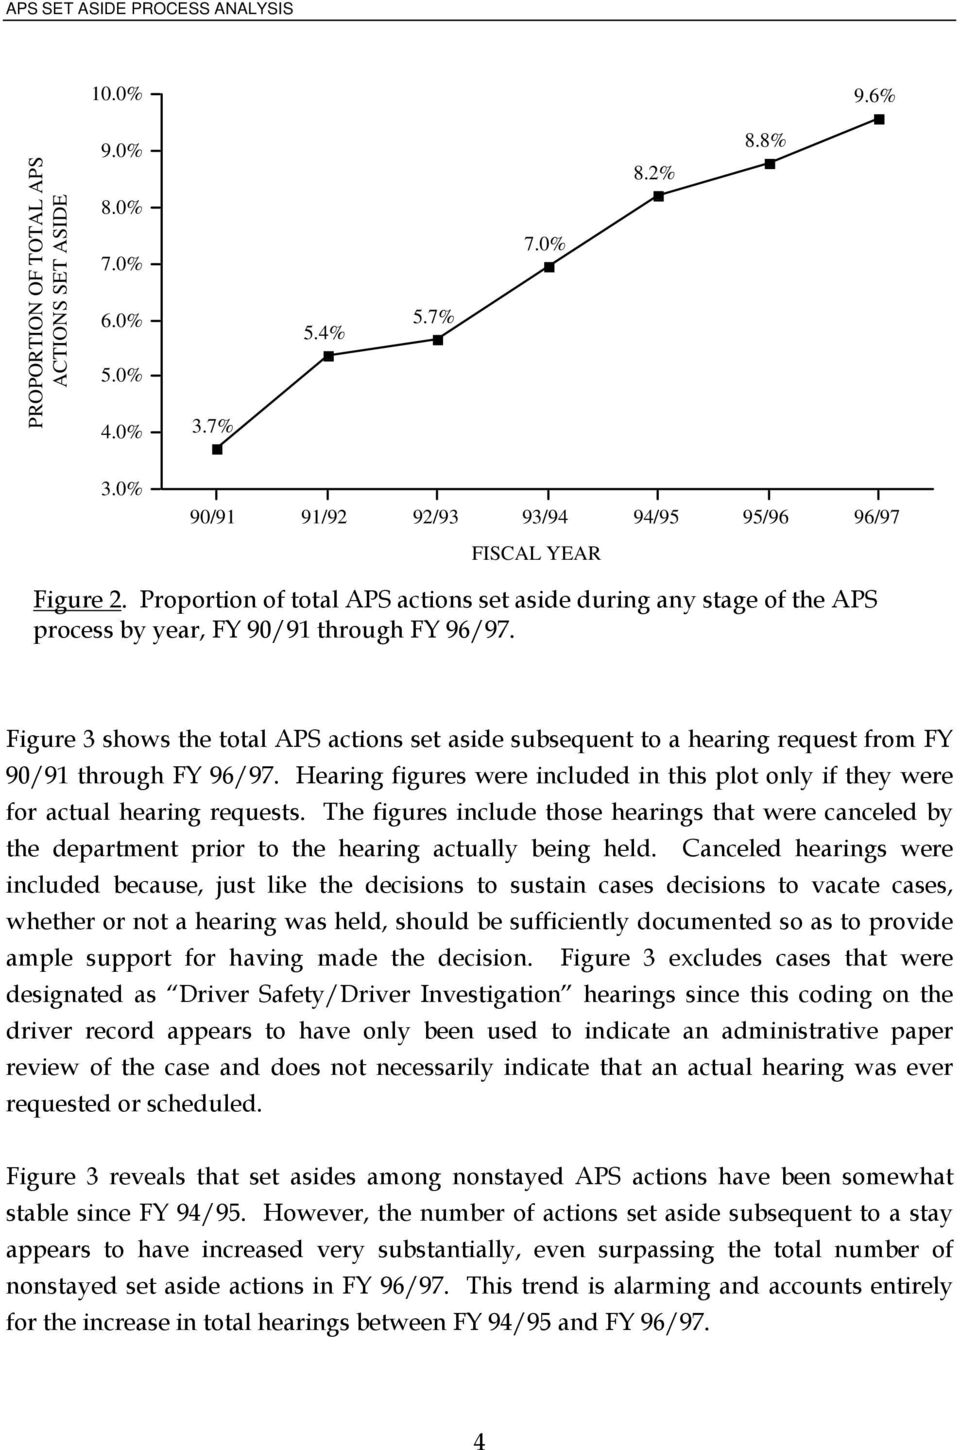 Figure 3 shows the total APS actions set aside subsequent to a hearing request from FY 90/91 through FY 96/97. Hearing figures were included in this plot only if they were for actual hearing requests.